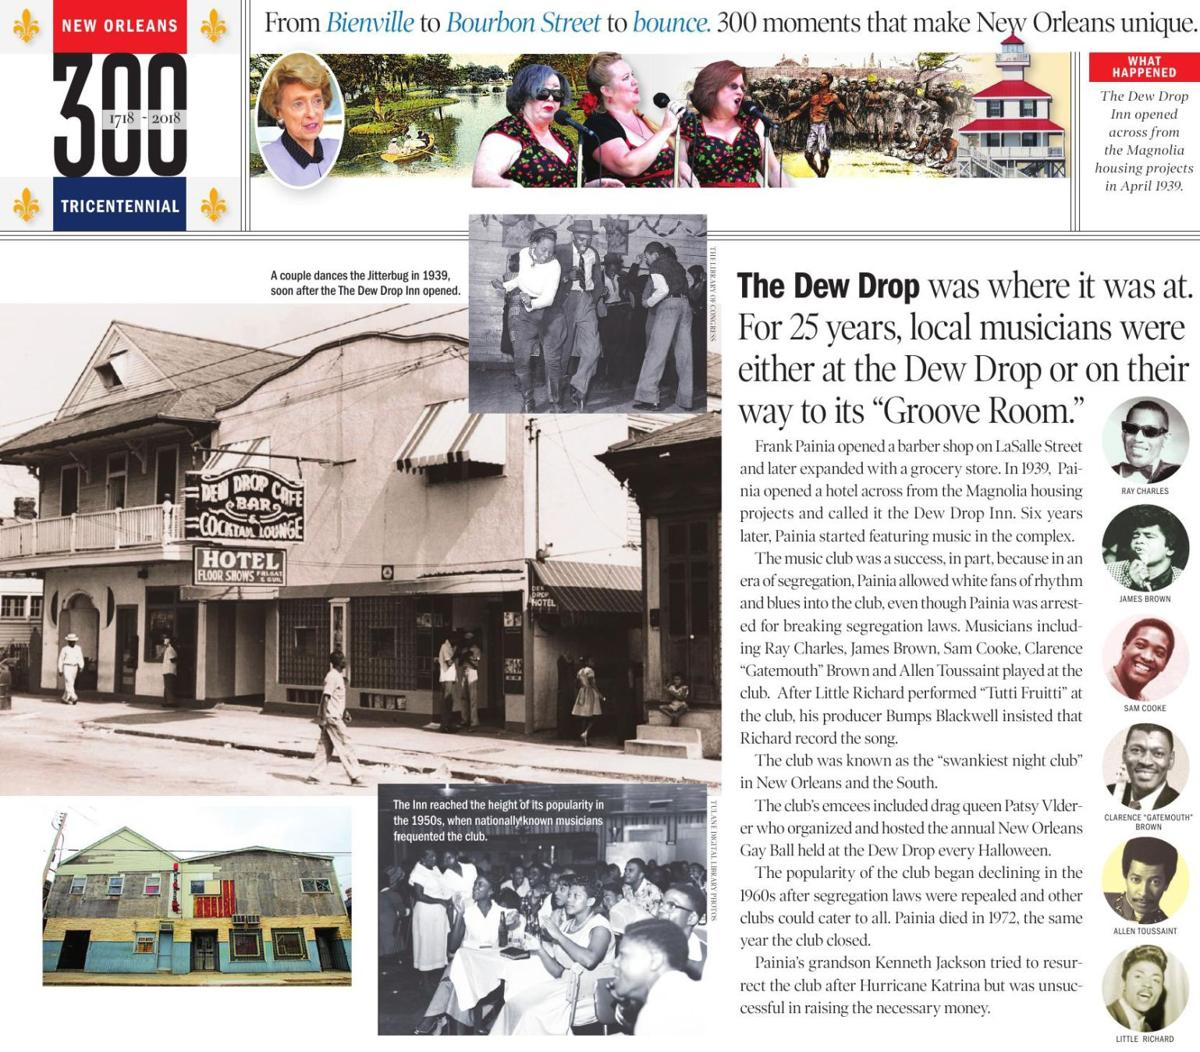 The Dew Drop Inn opened across from the Magnolia housing projects in April 1939.